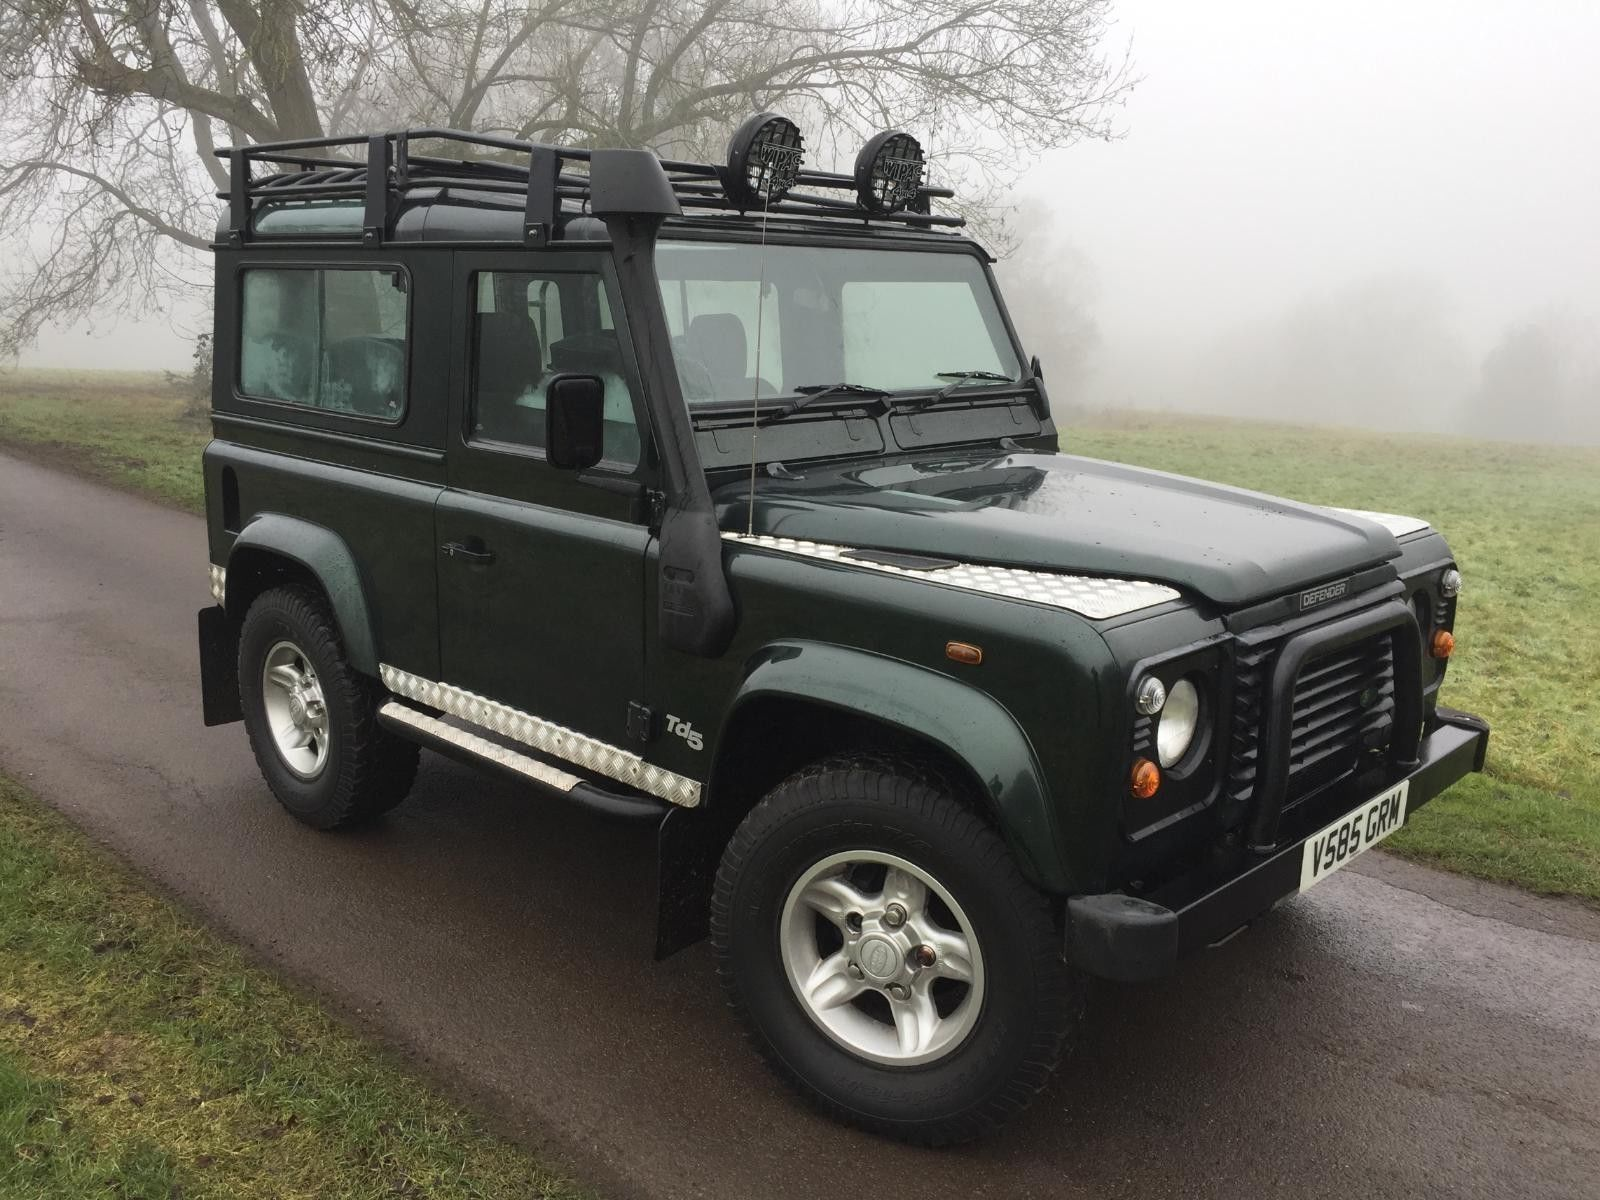 Sellers Comments 1999 Land Rover Defender 90 County Station Wagon Td5 Epsom  Green 109K, Good condition inside and out Model Year: 1999 Mileage: 109,000  ...